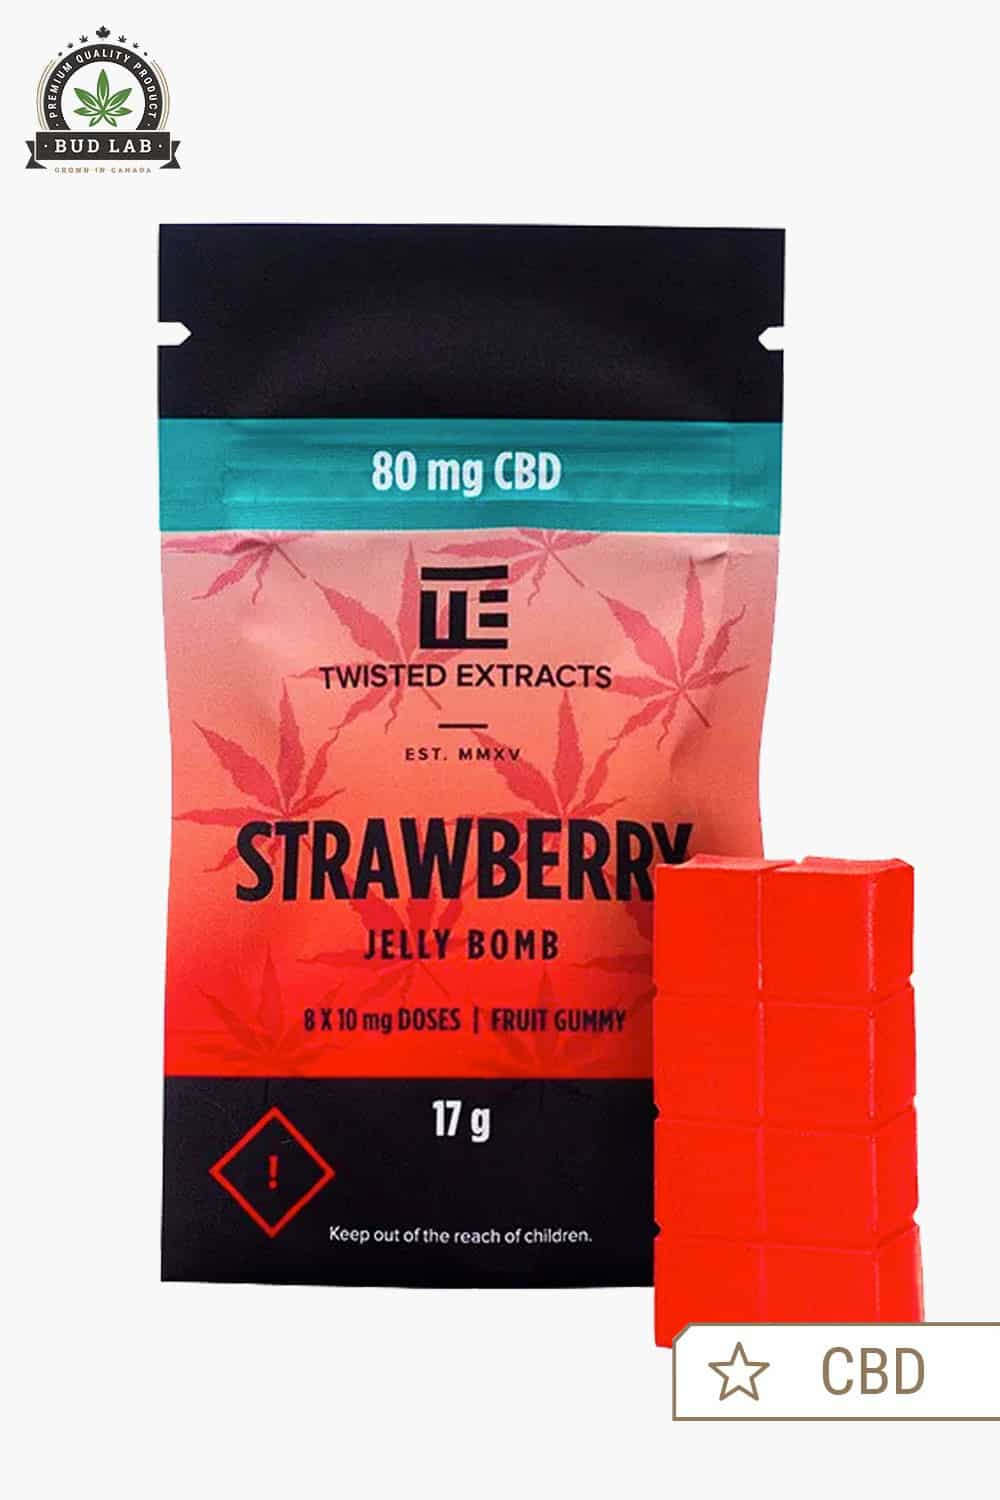 Twisted Extracts Strawberry CBD Jelly Bomb 80mg